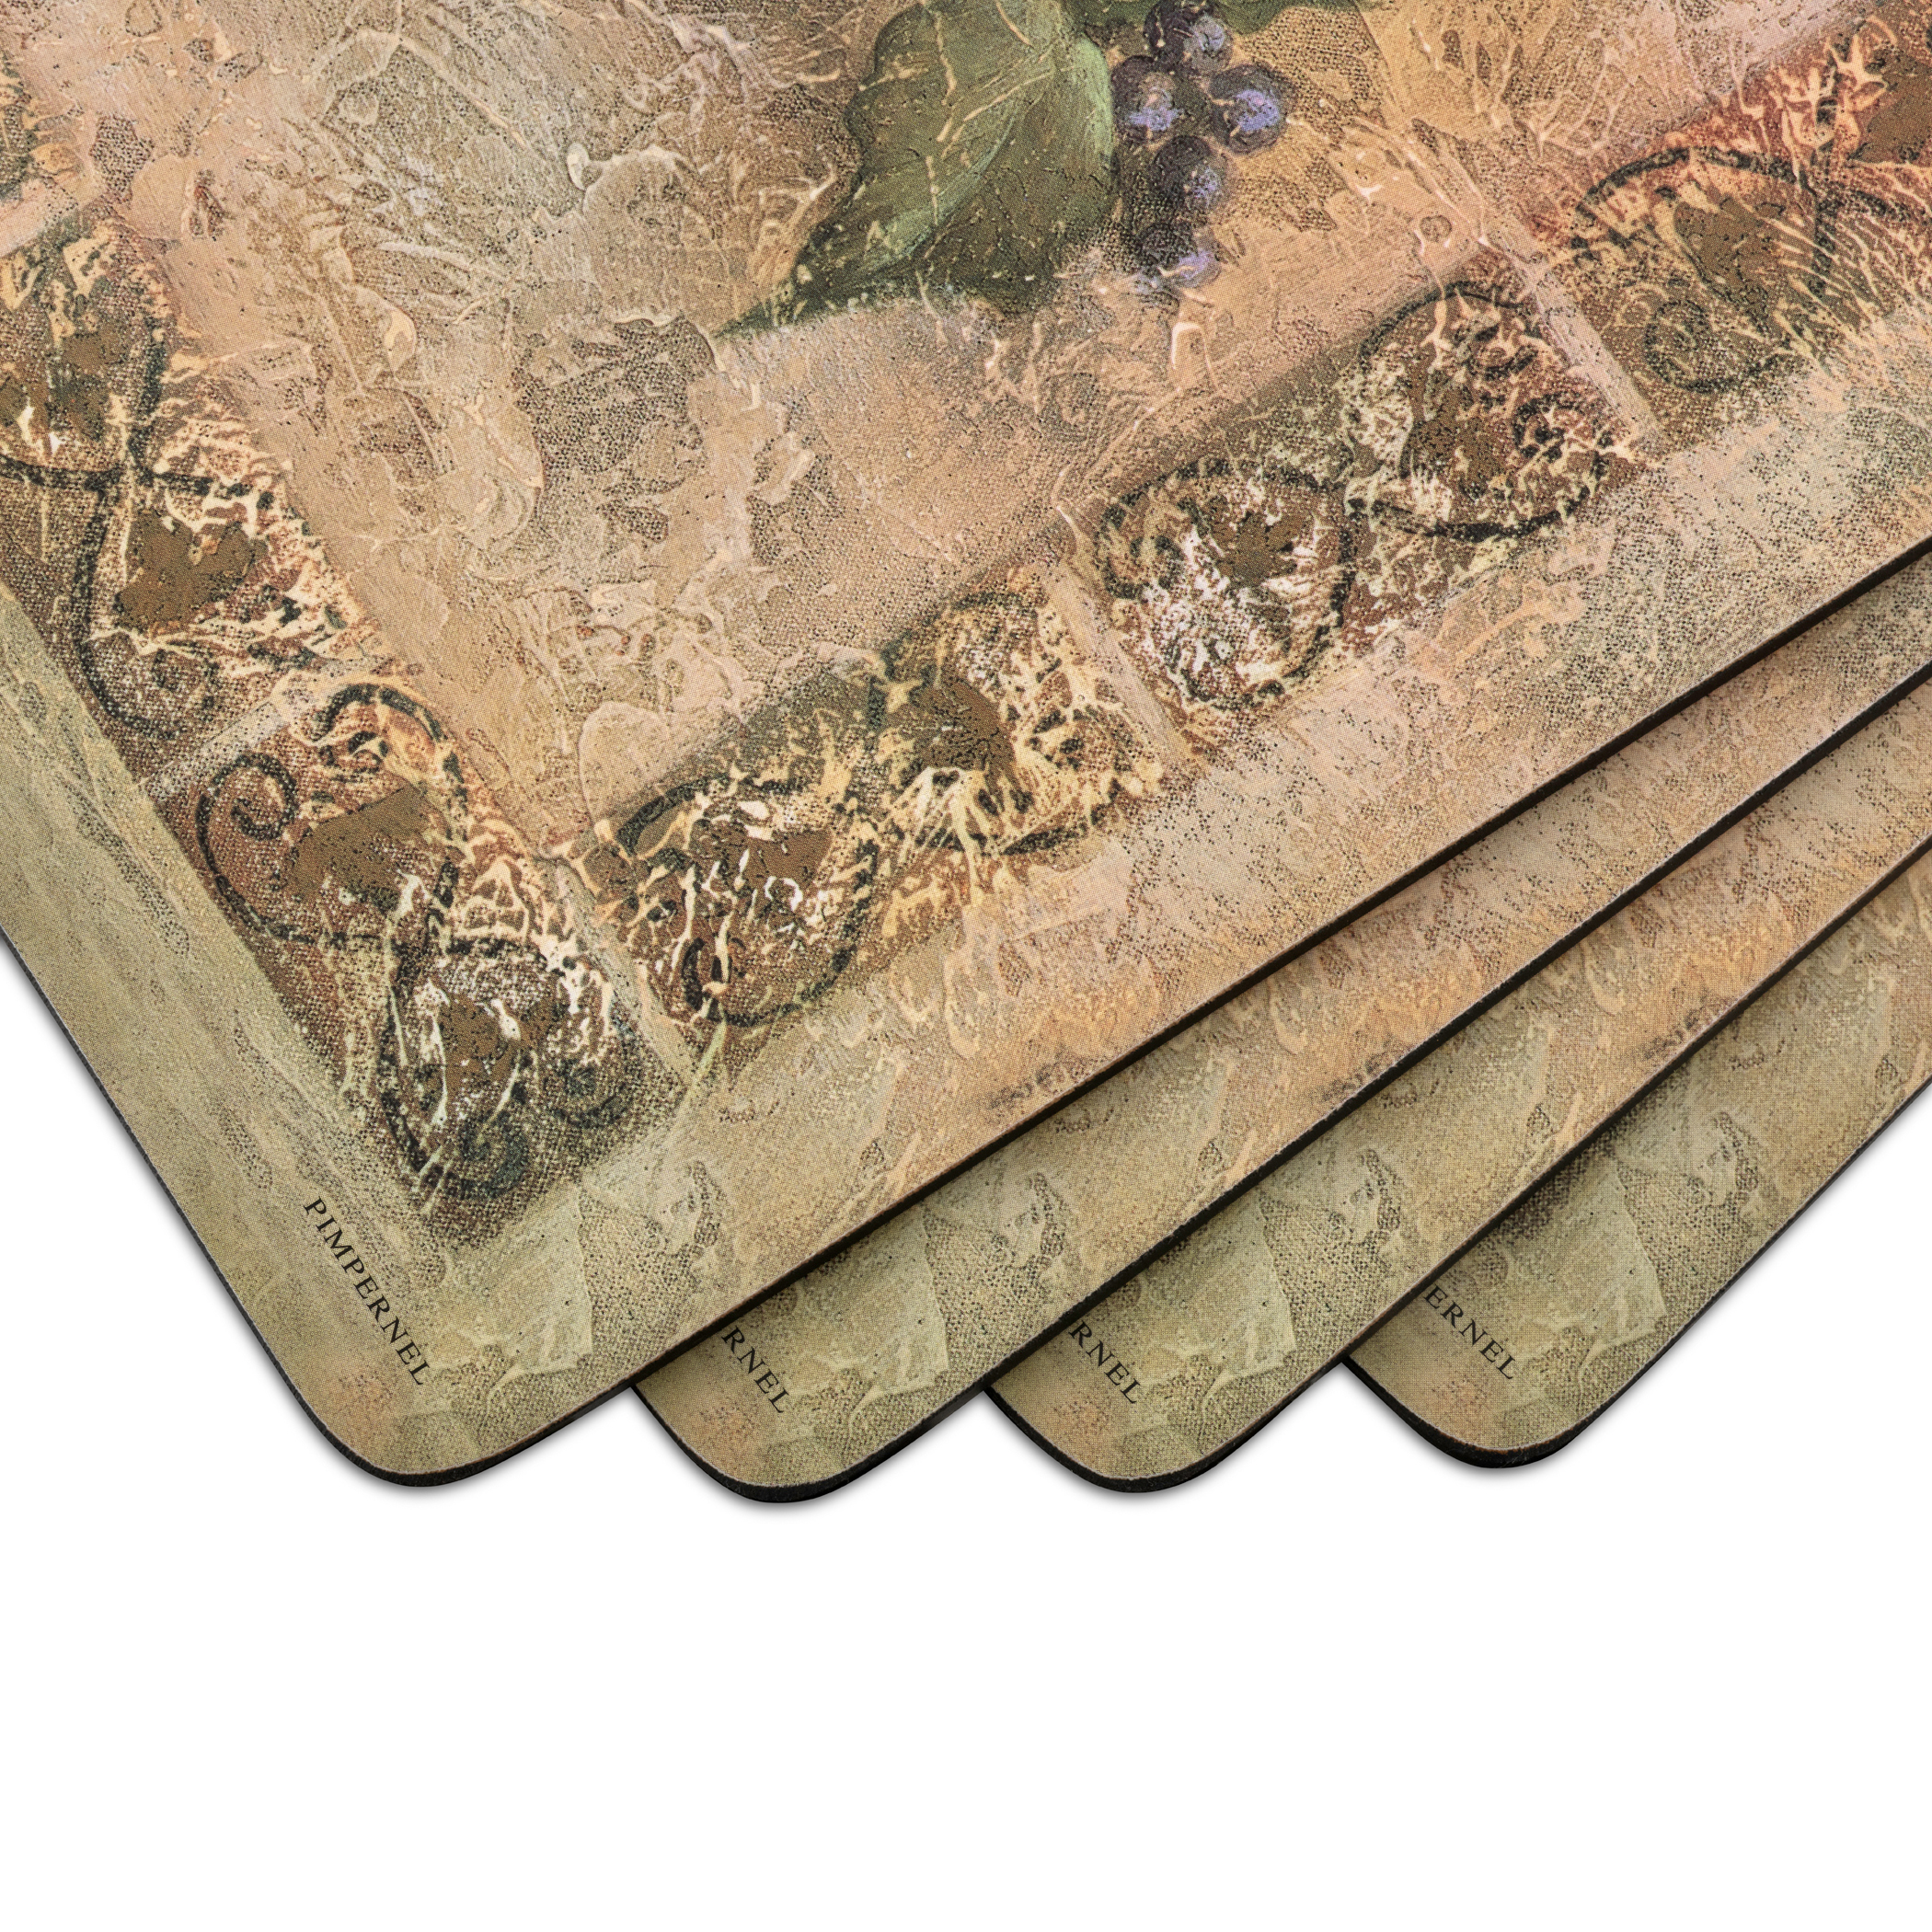 Pimpernel Tuscan Palette Placemats Set of 4 image number 1